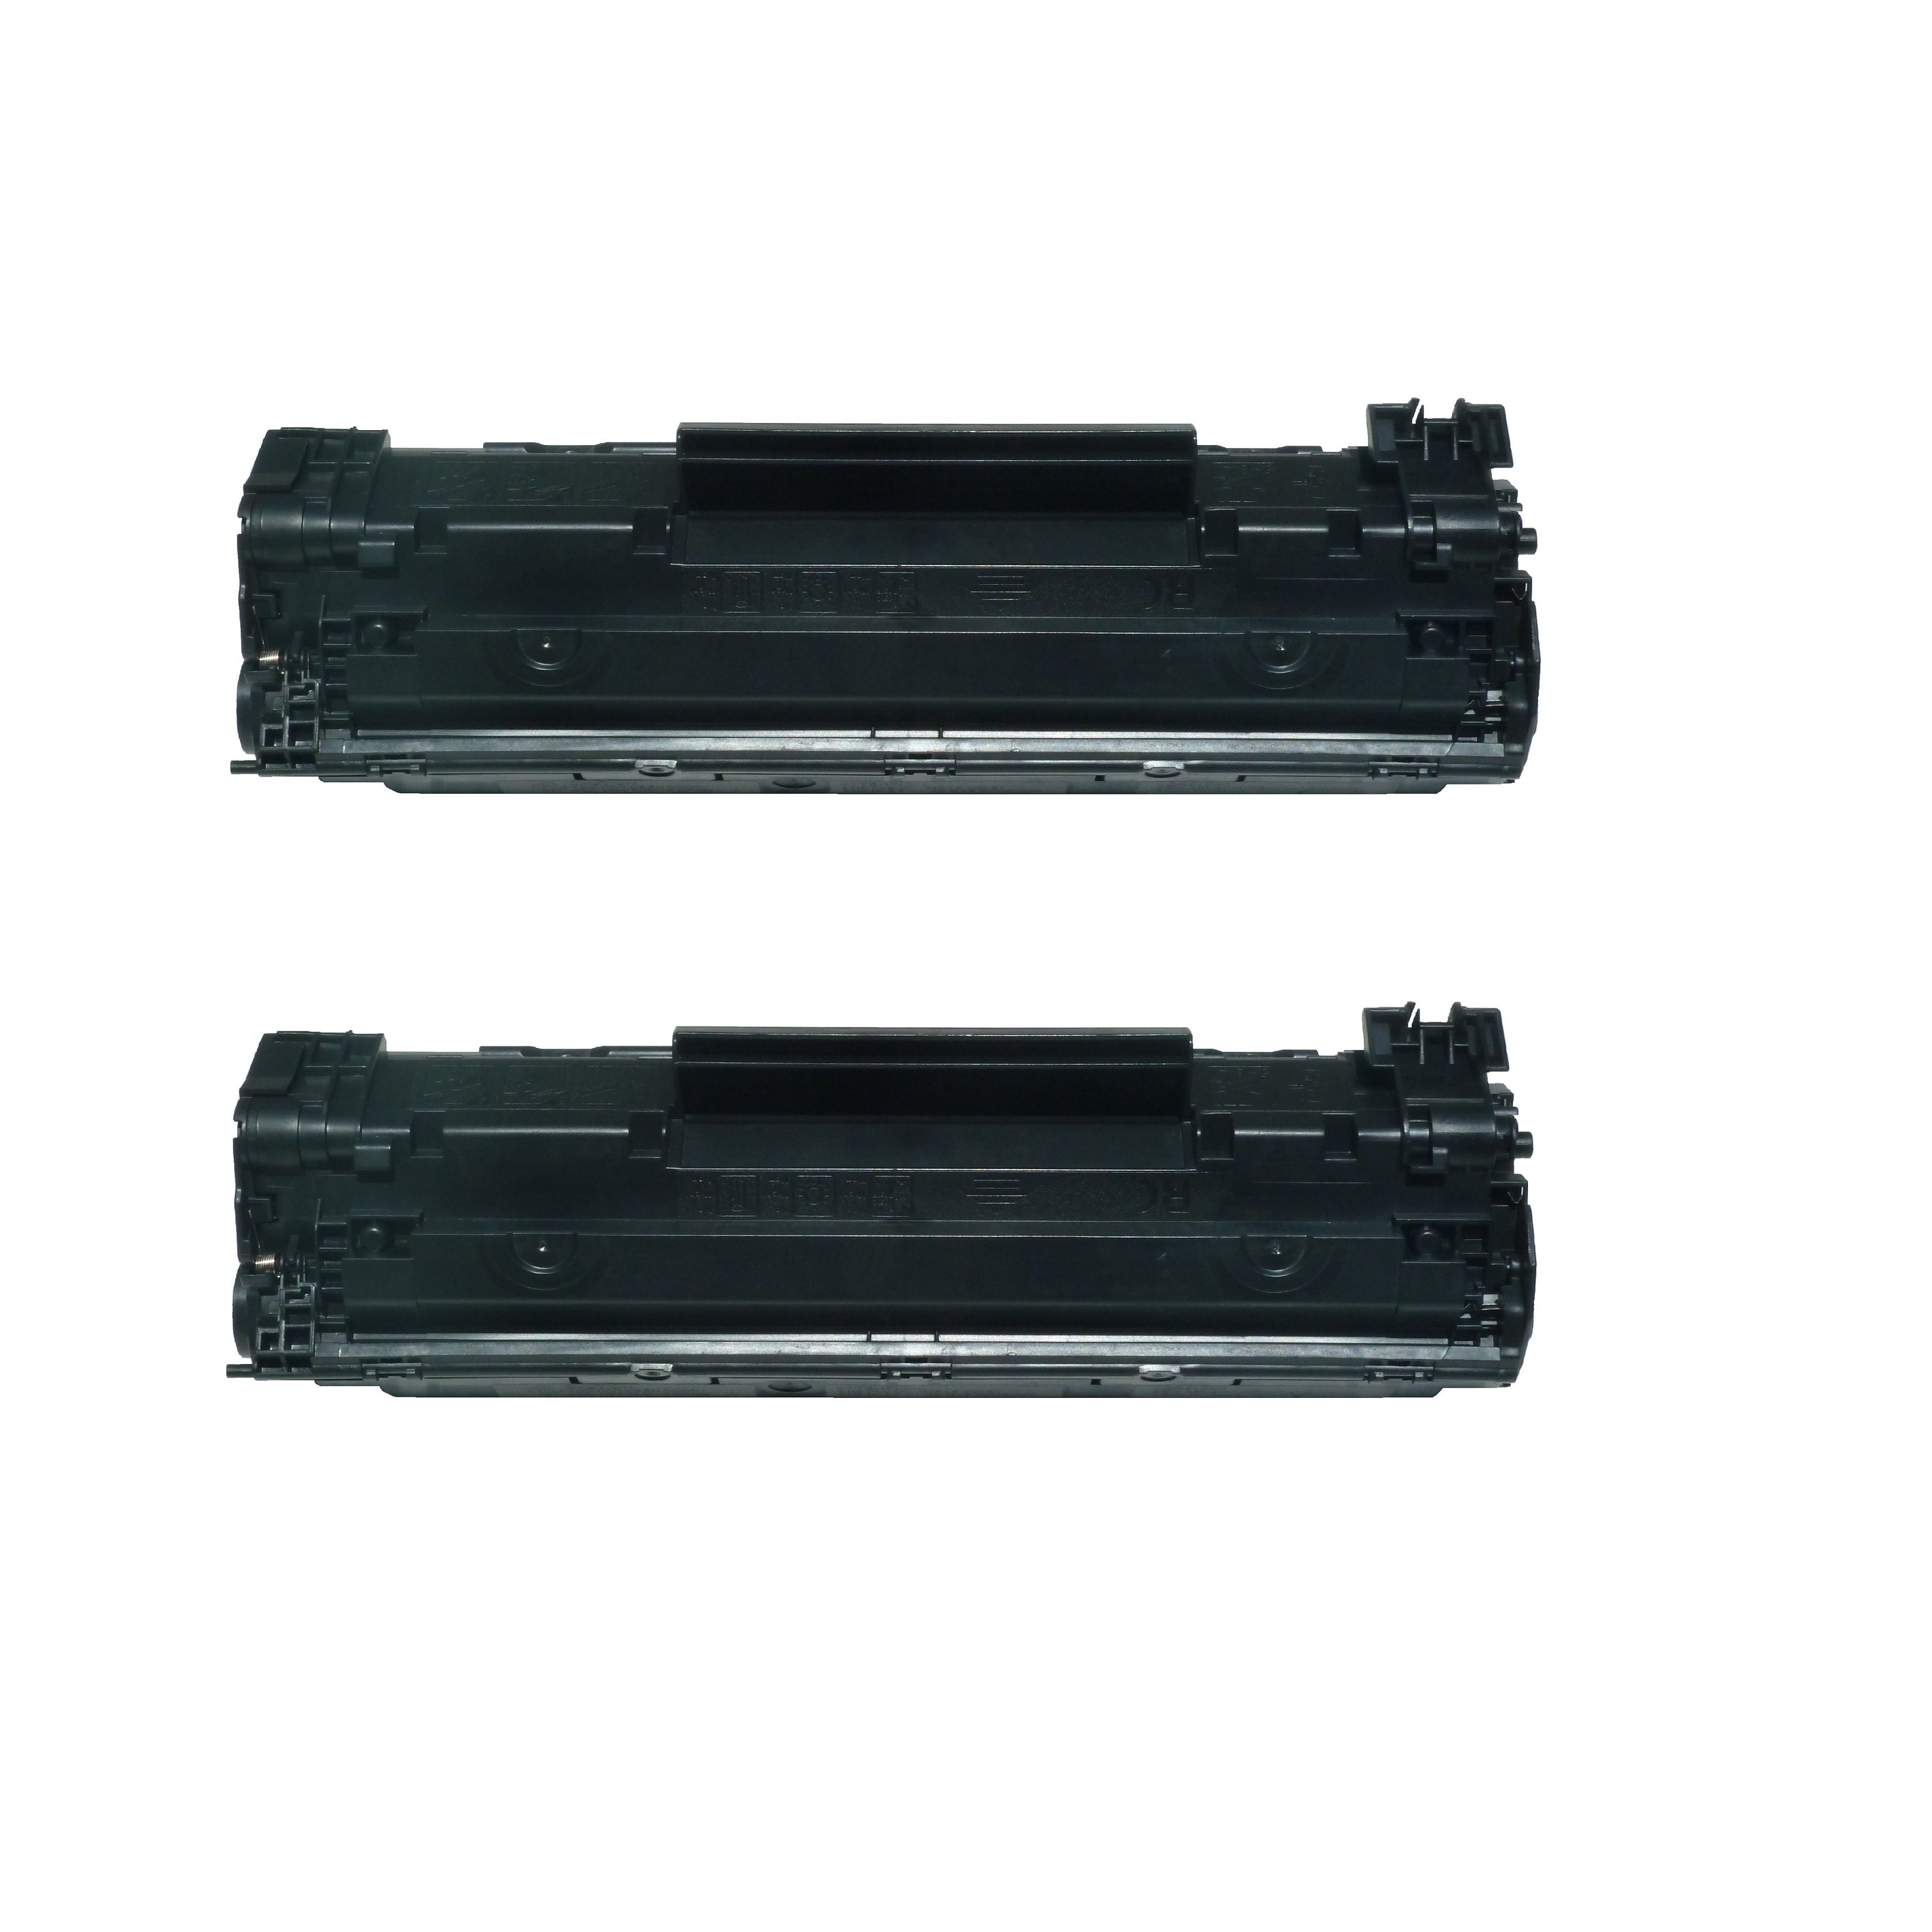 4PK 410A 410X CF410A CF410X CF411X CF412X CF413X Toner Cartridge for HP NON-OEM